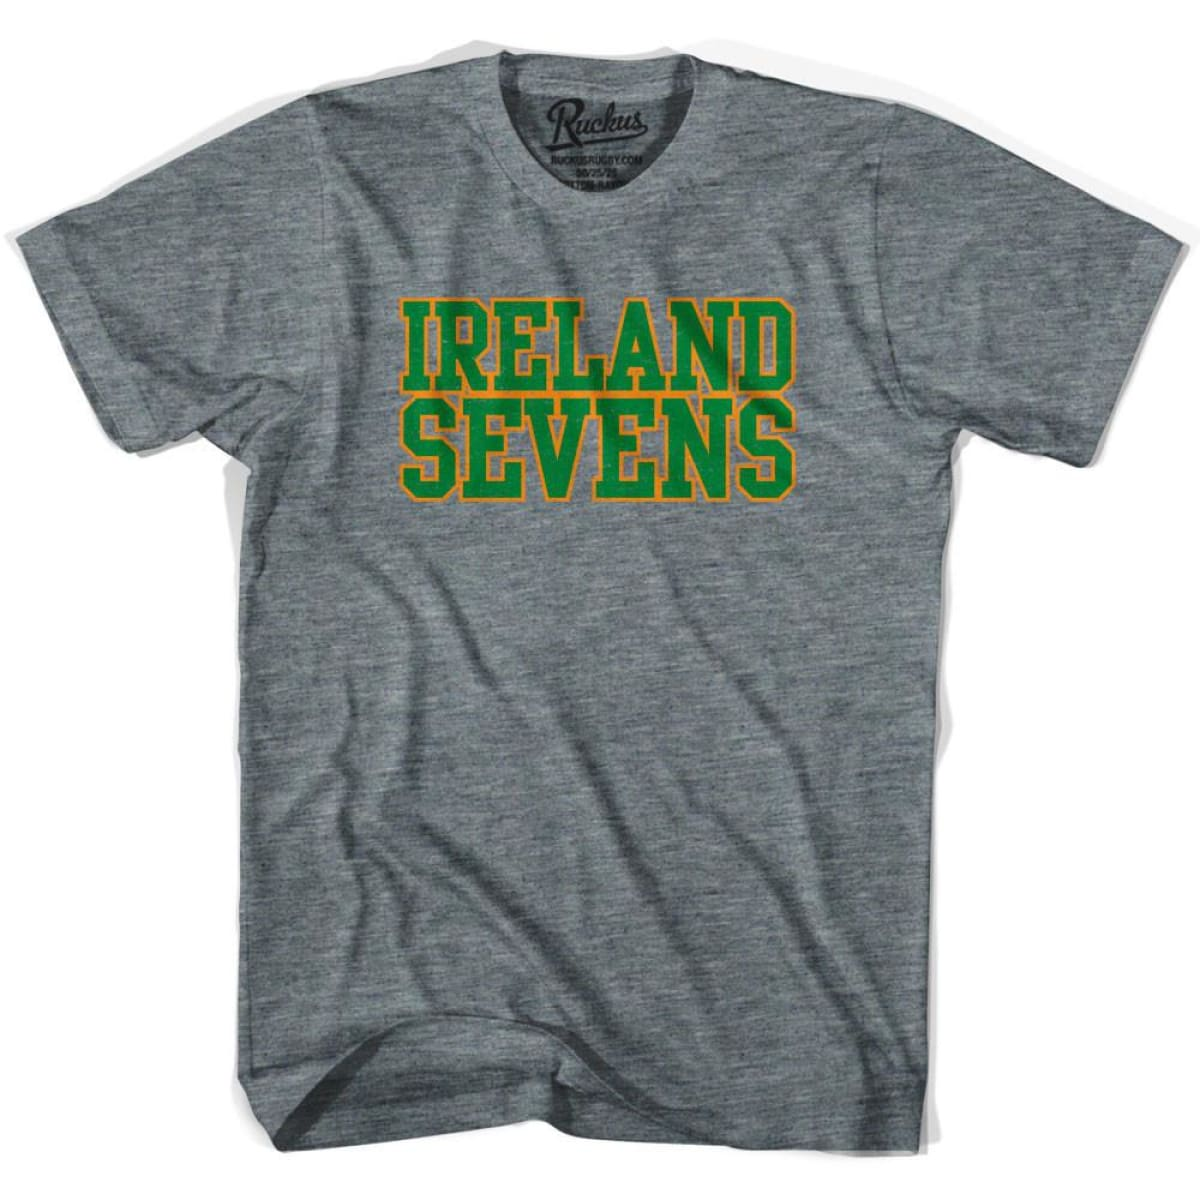 Ireland Sevens Rugby T-shirt - Athletic Grey / Adult Small - Rugby T-shirt